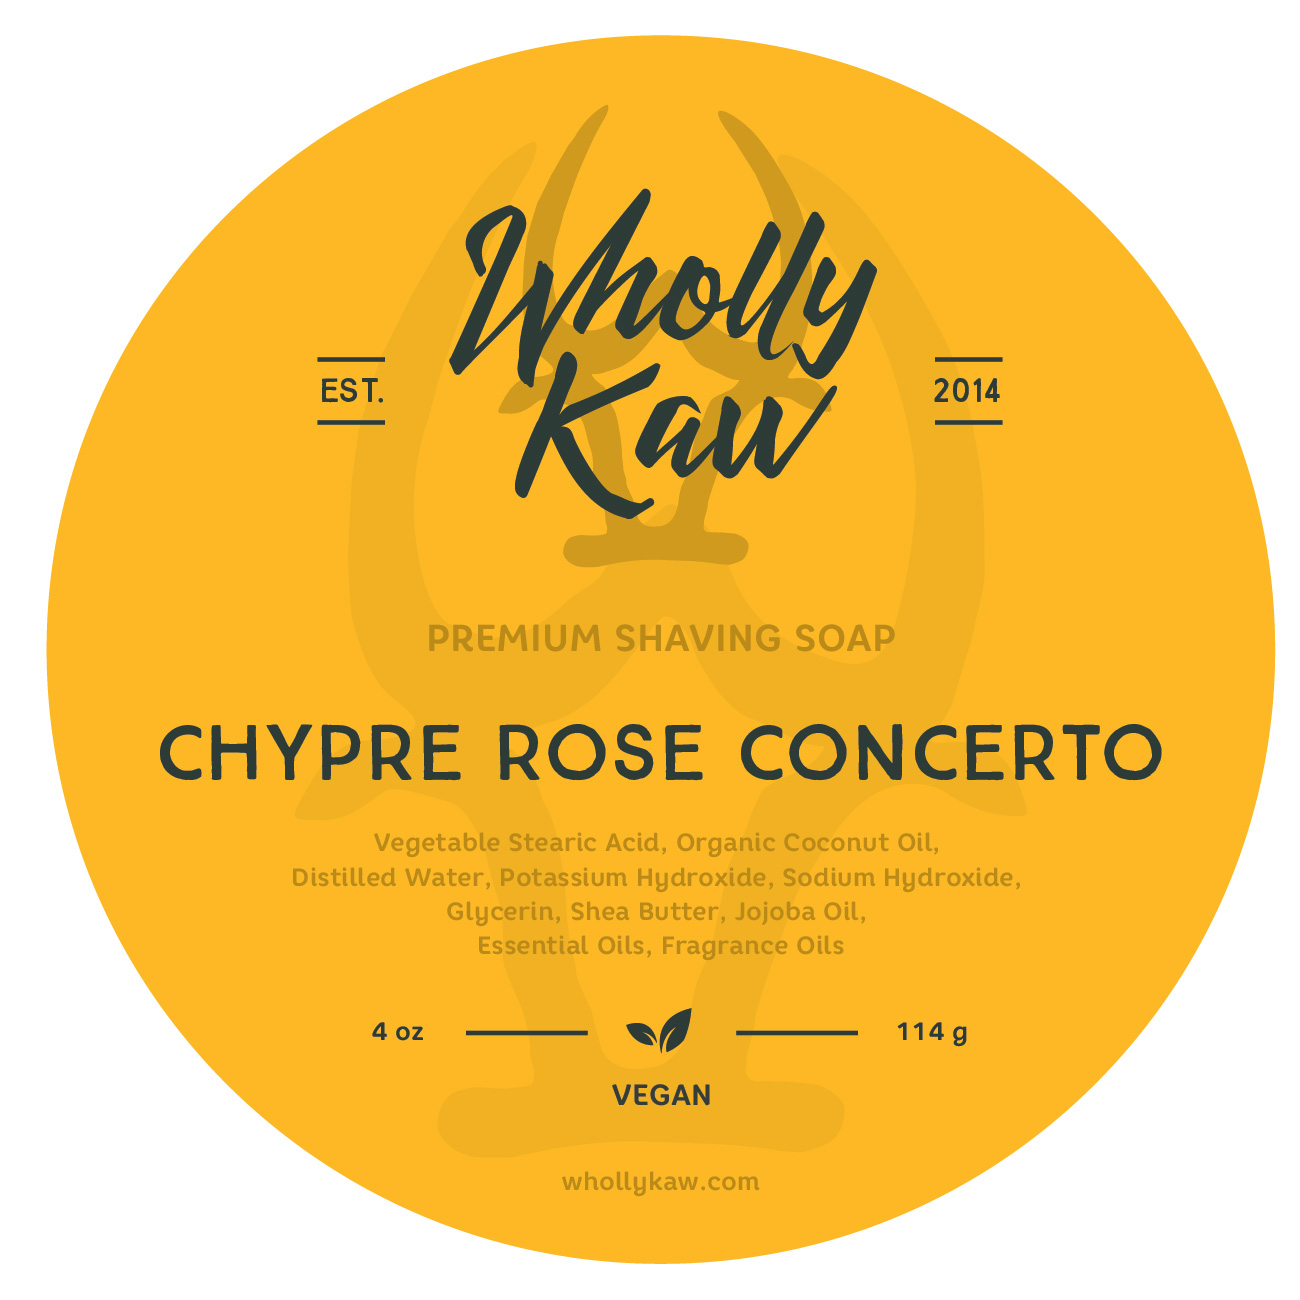 Wholly Kaw - Chypre Rose Concerto - Soap (Vegan) image